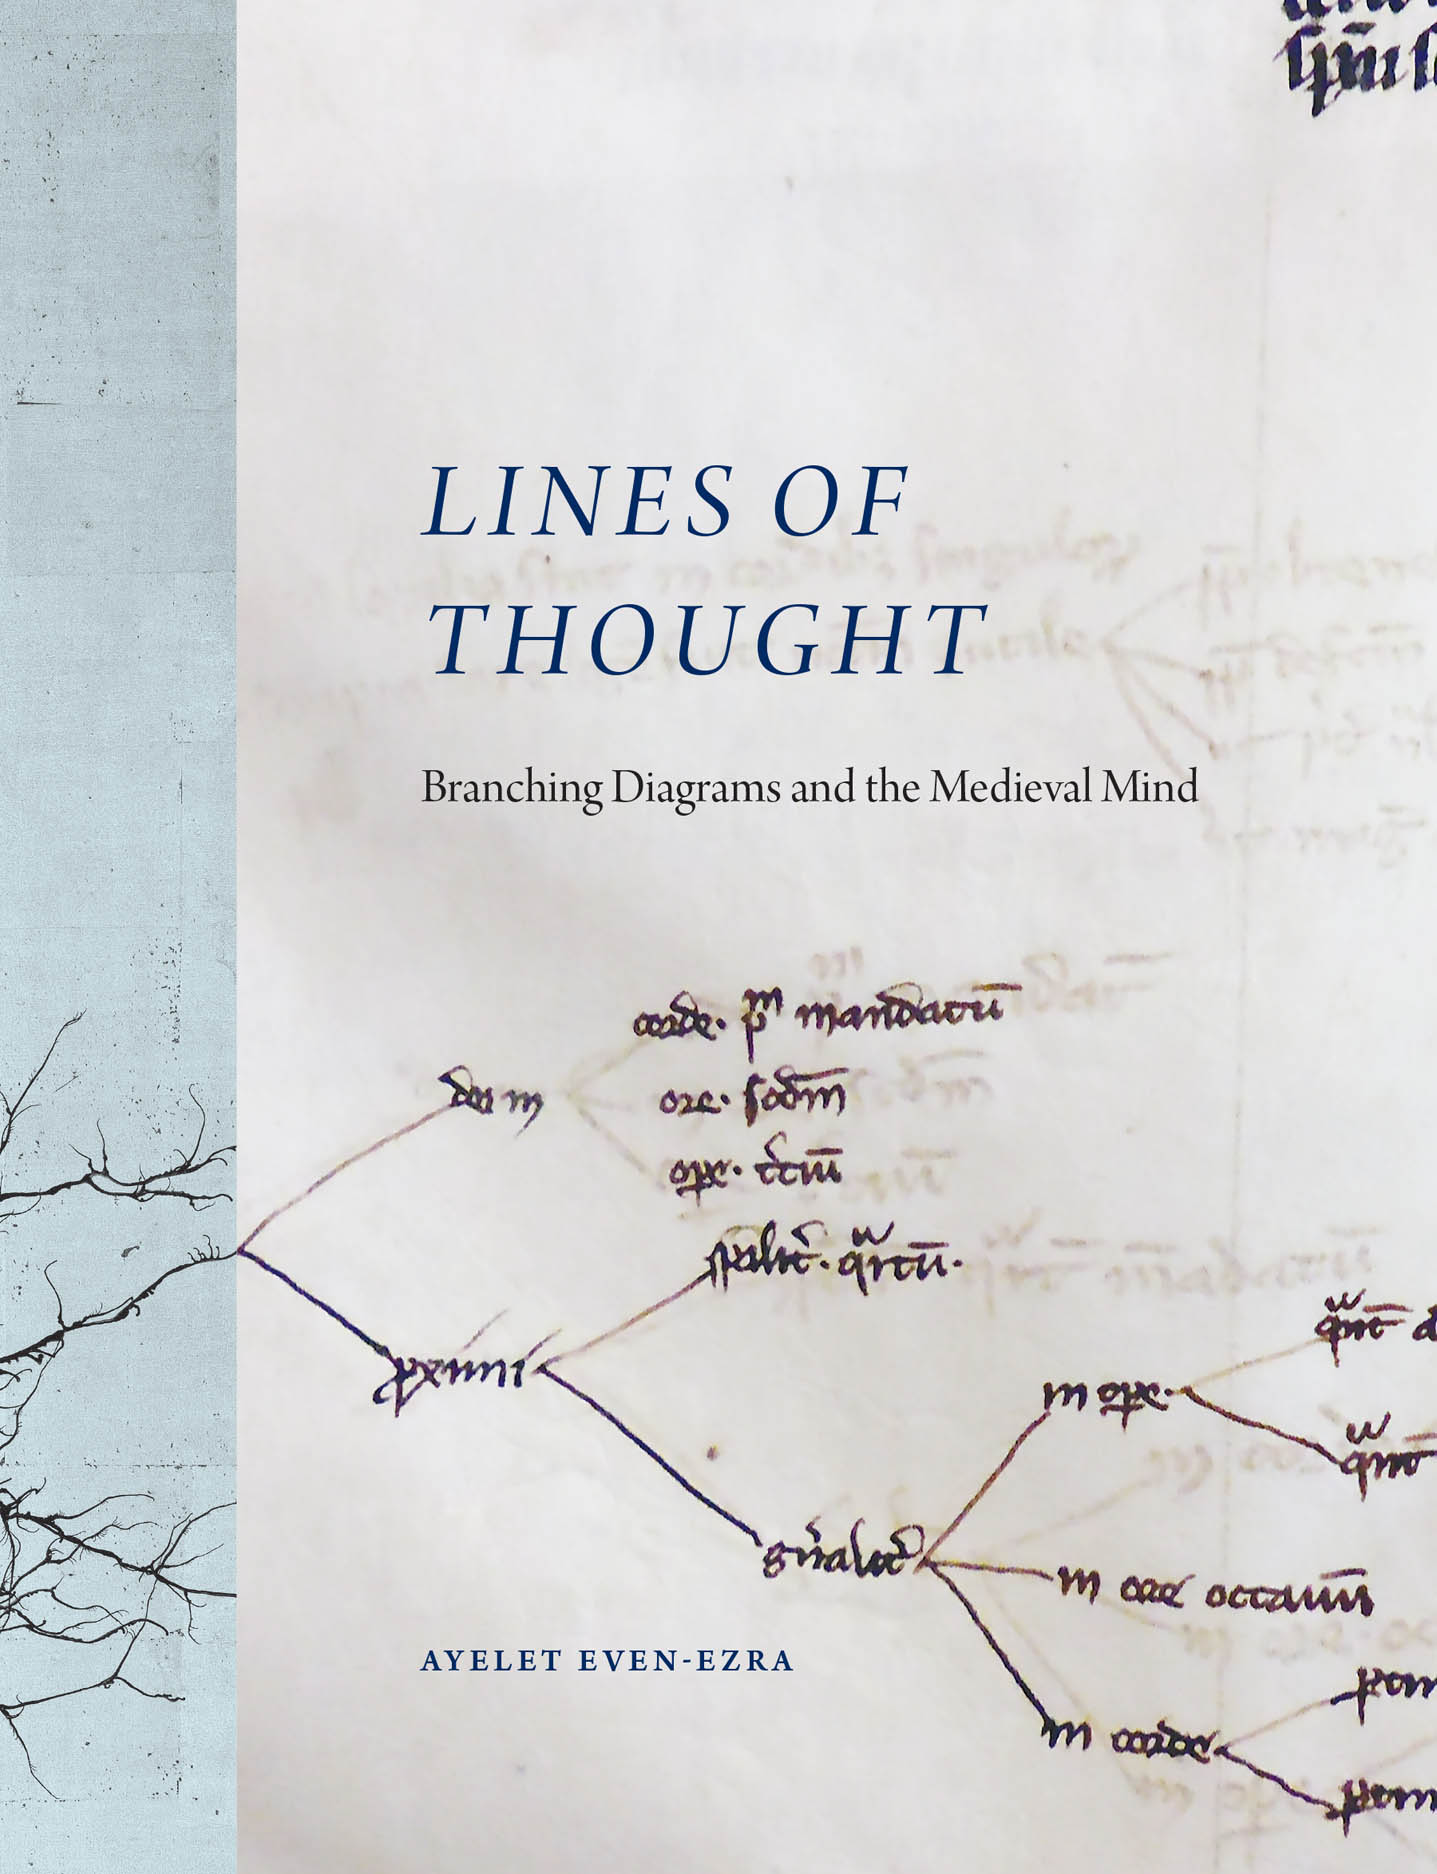 Lines of Thought: Branching Diagrams and the Medieval Mind